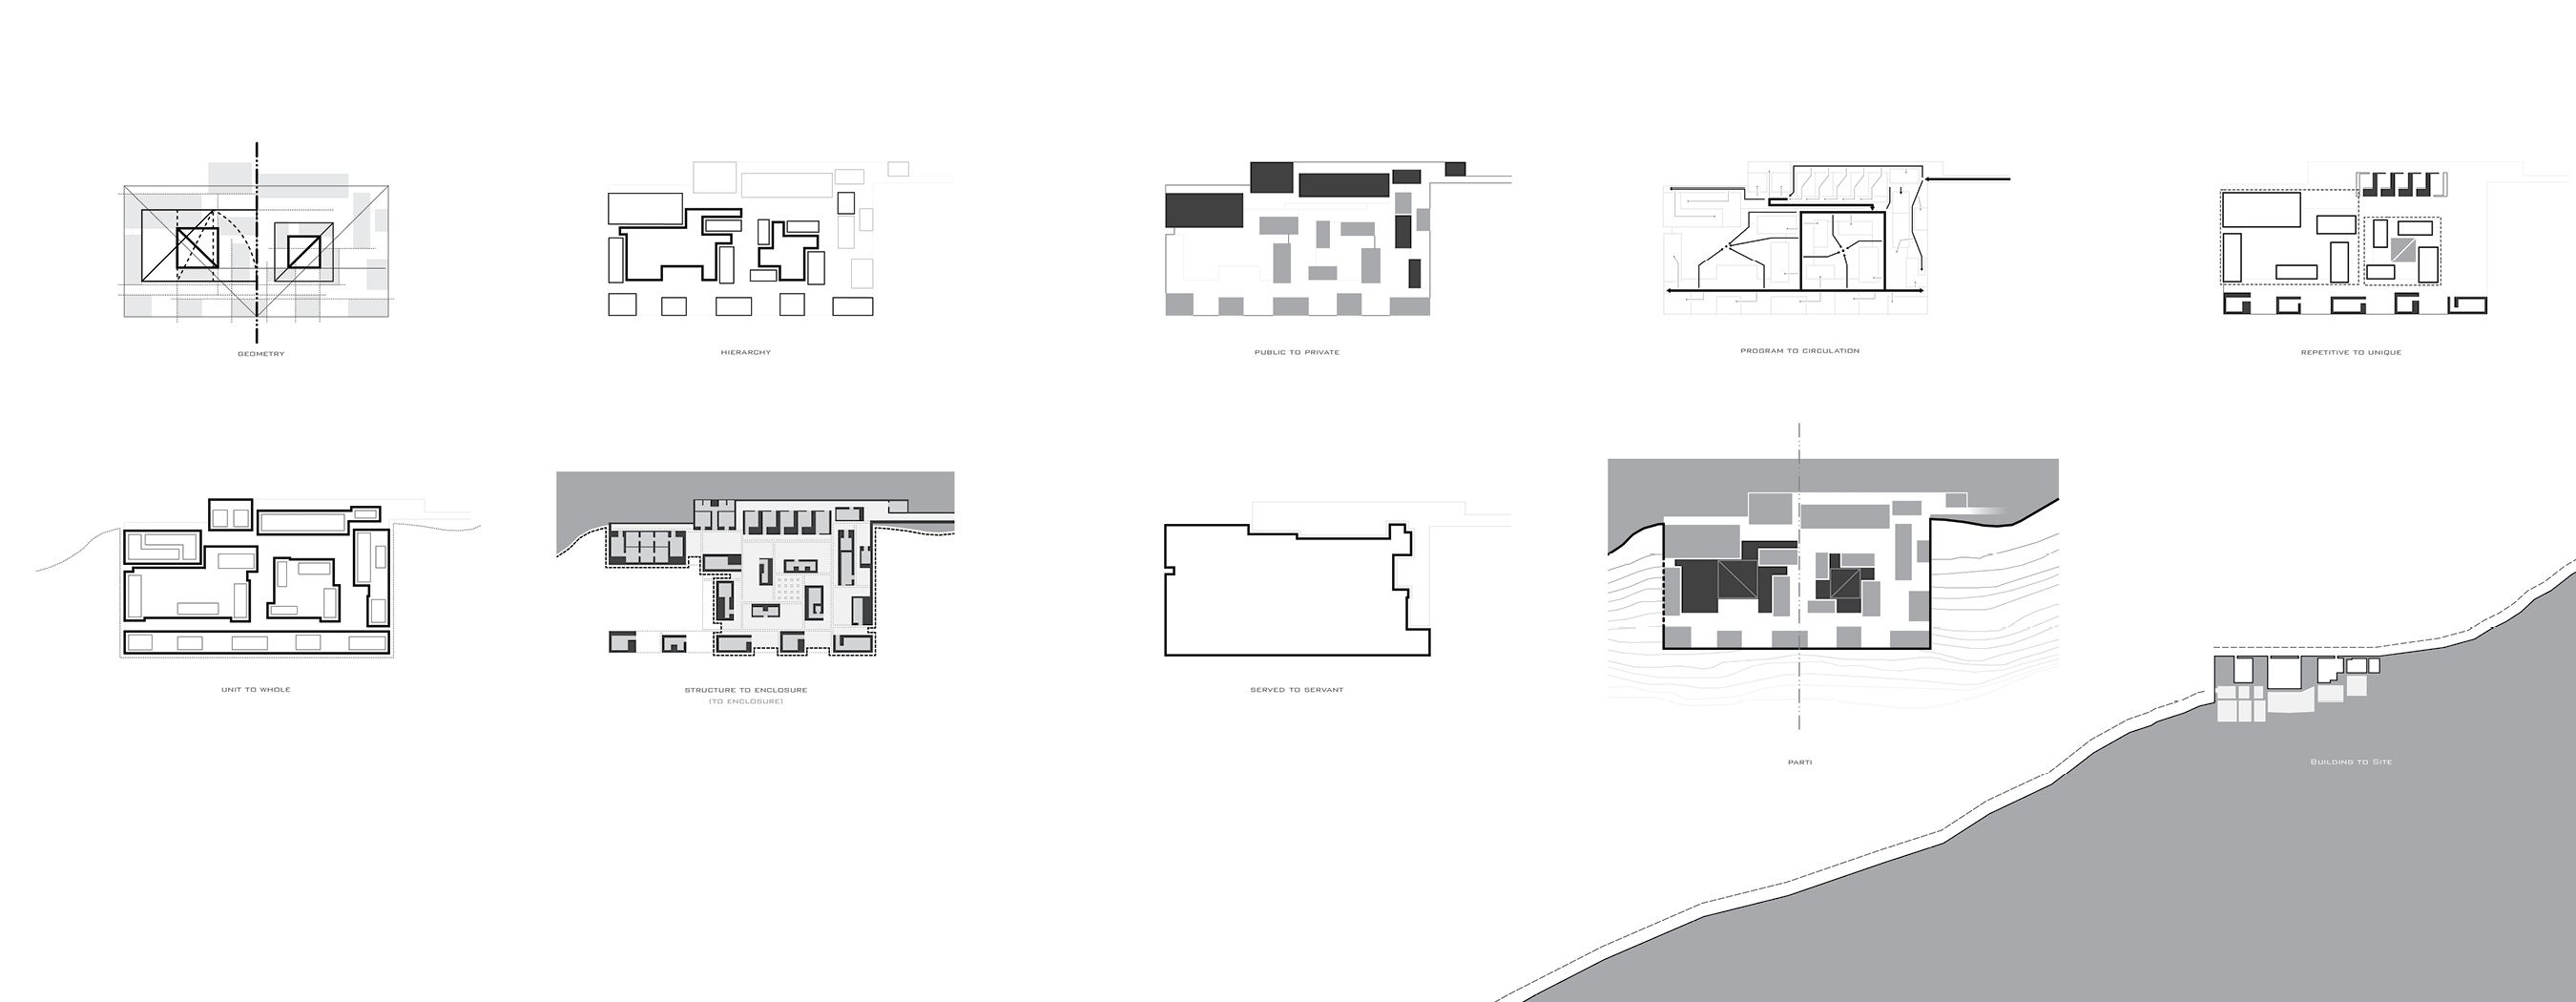 Diagrammatic Analysis Of Peter Zumthor S Therme Vals Thermal